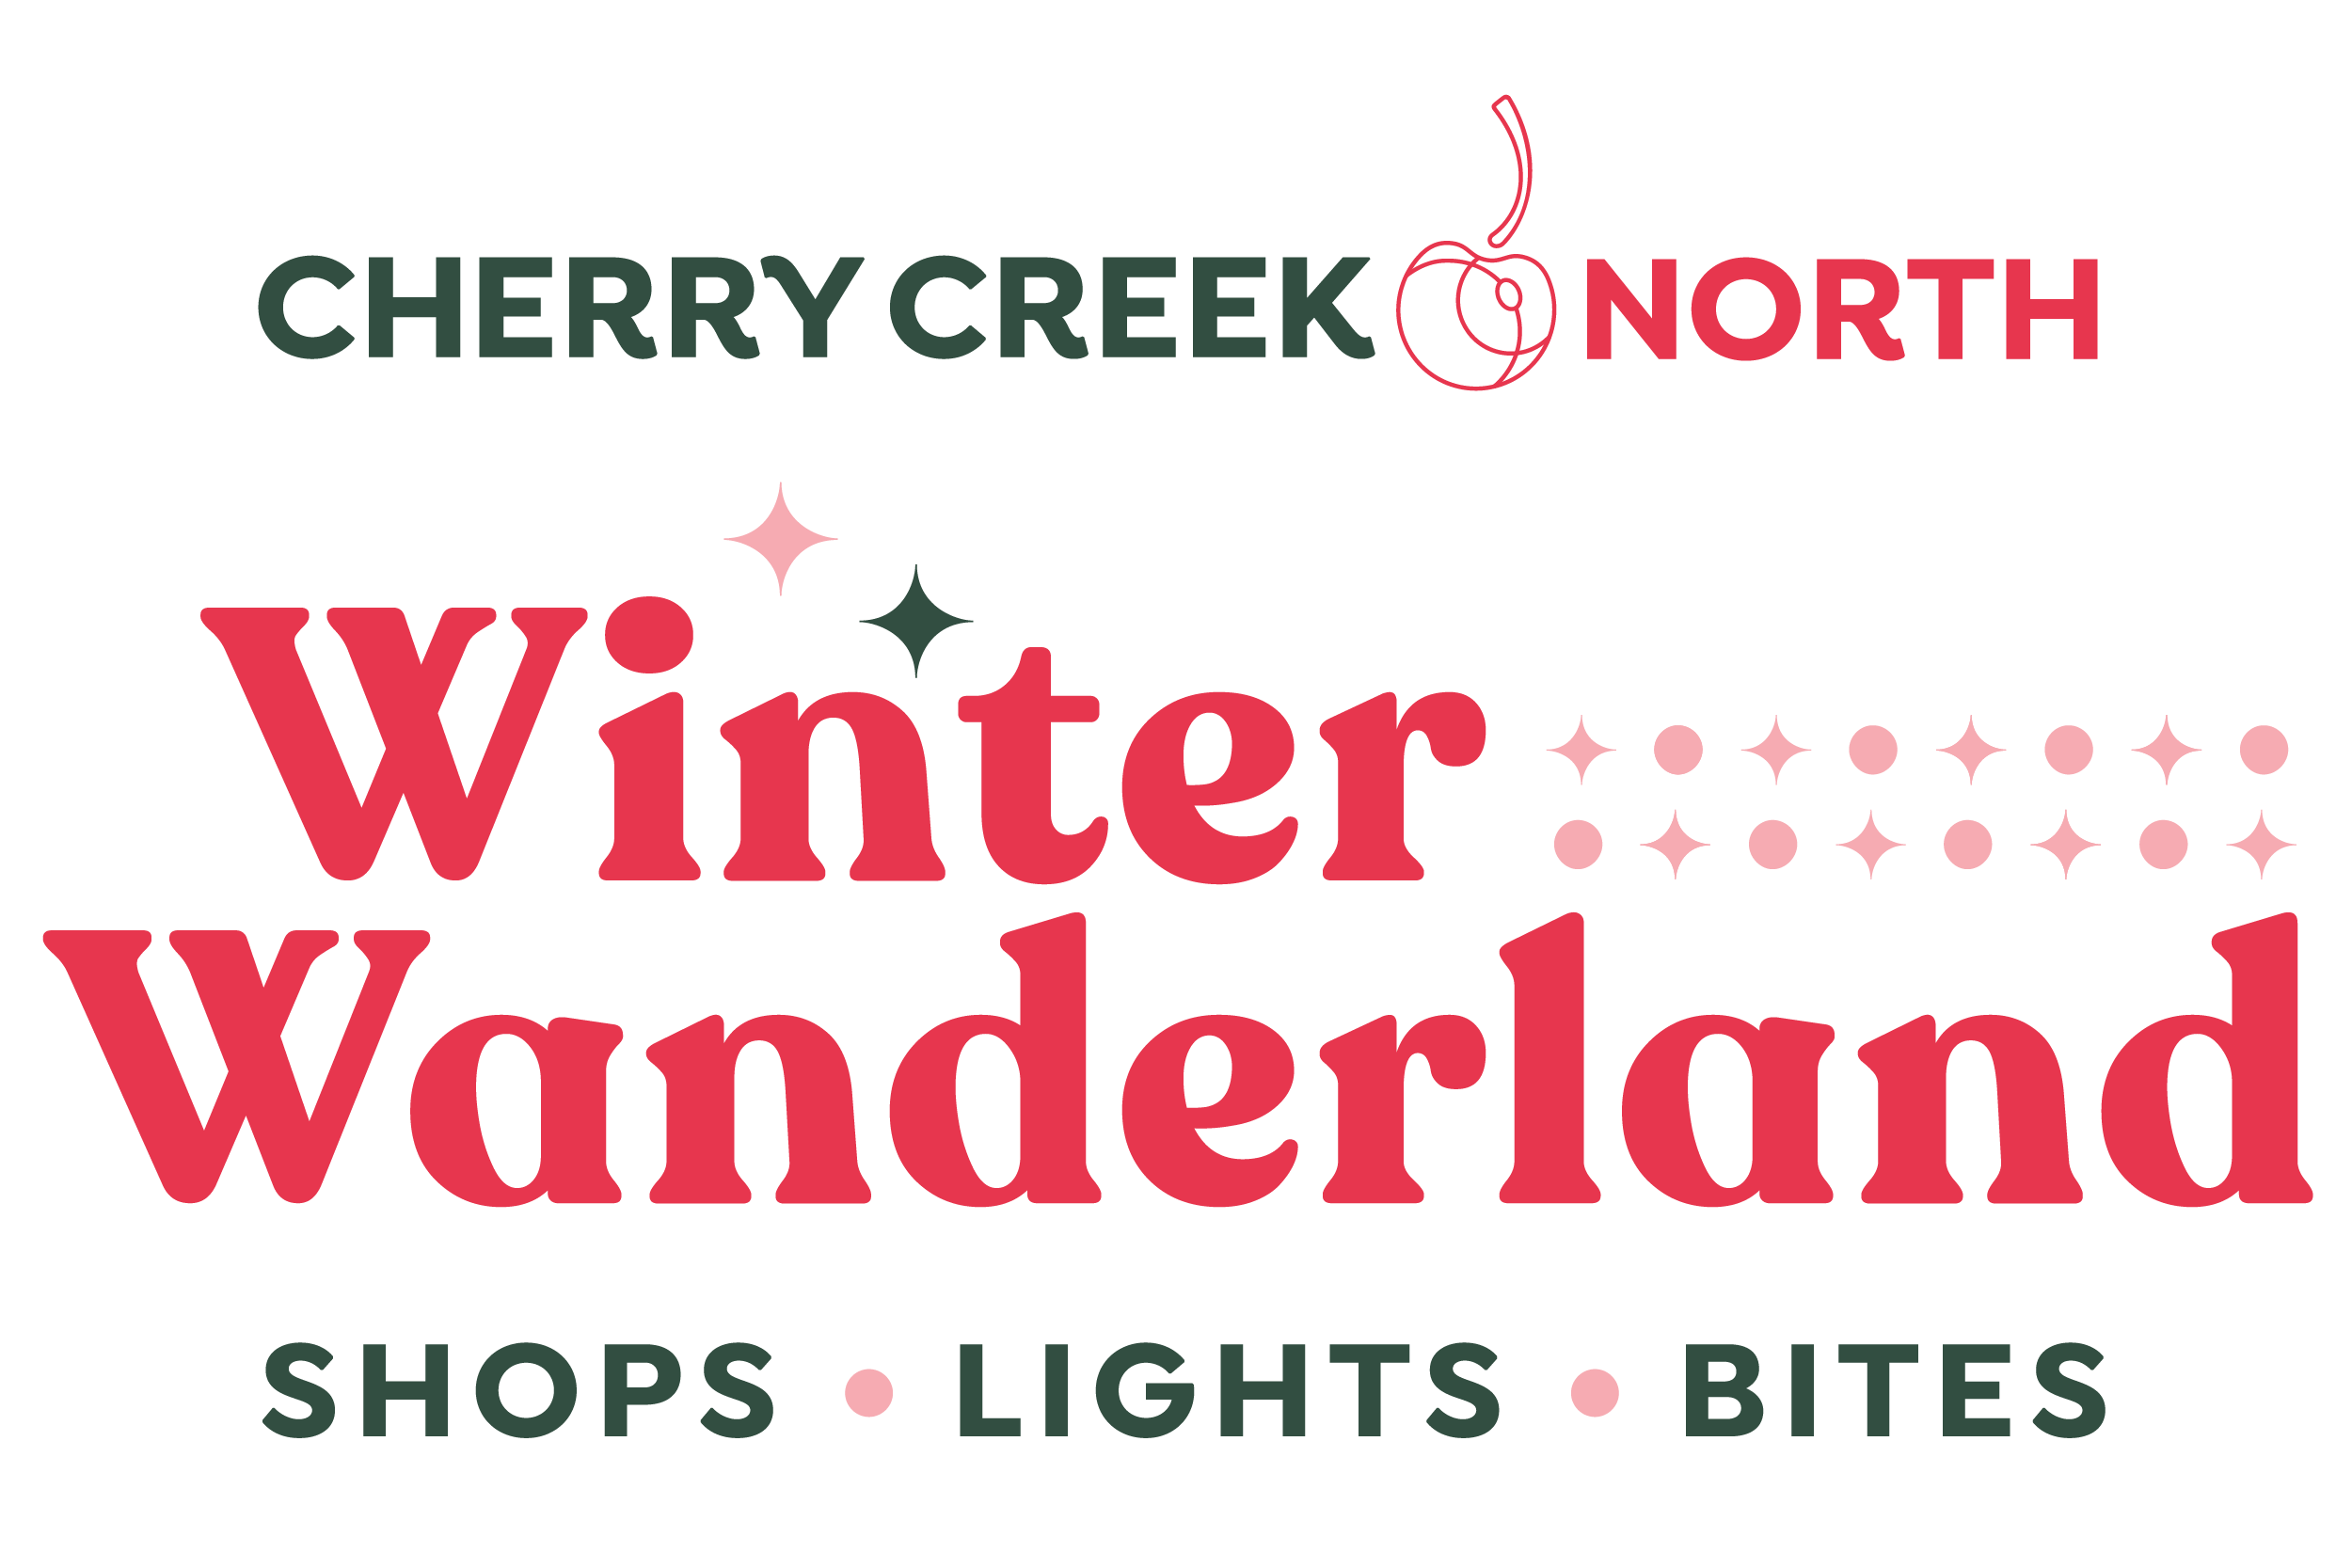 Cherry Creek North Winter Wanderland